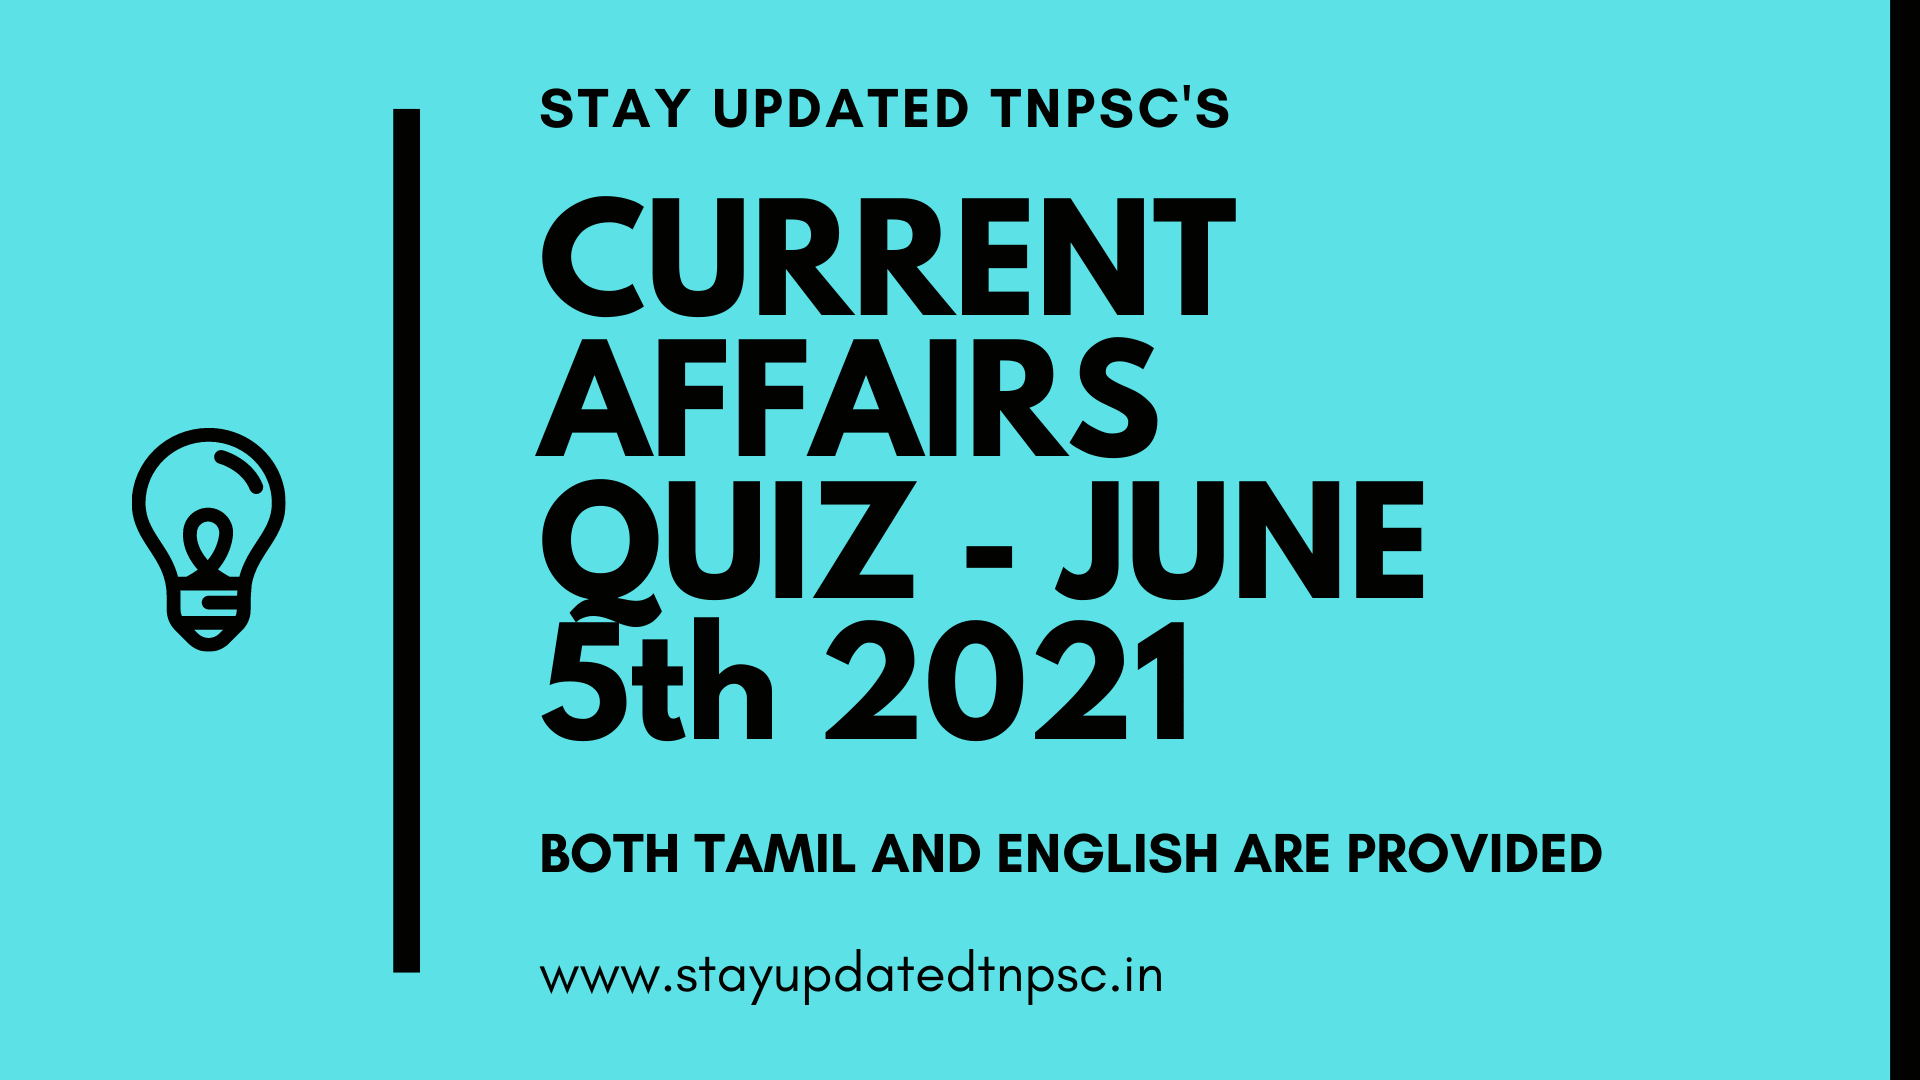 TNPSC DAILY CURRENT AFFAIRS: 05 JUNE 2021